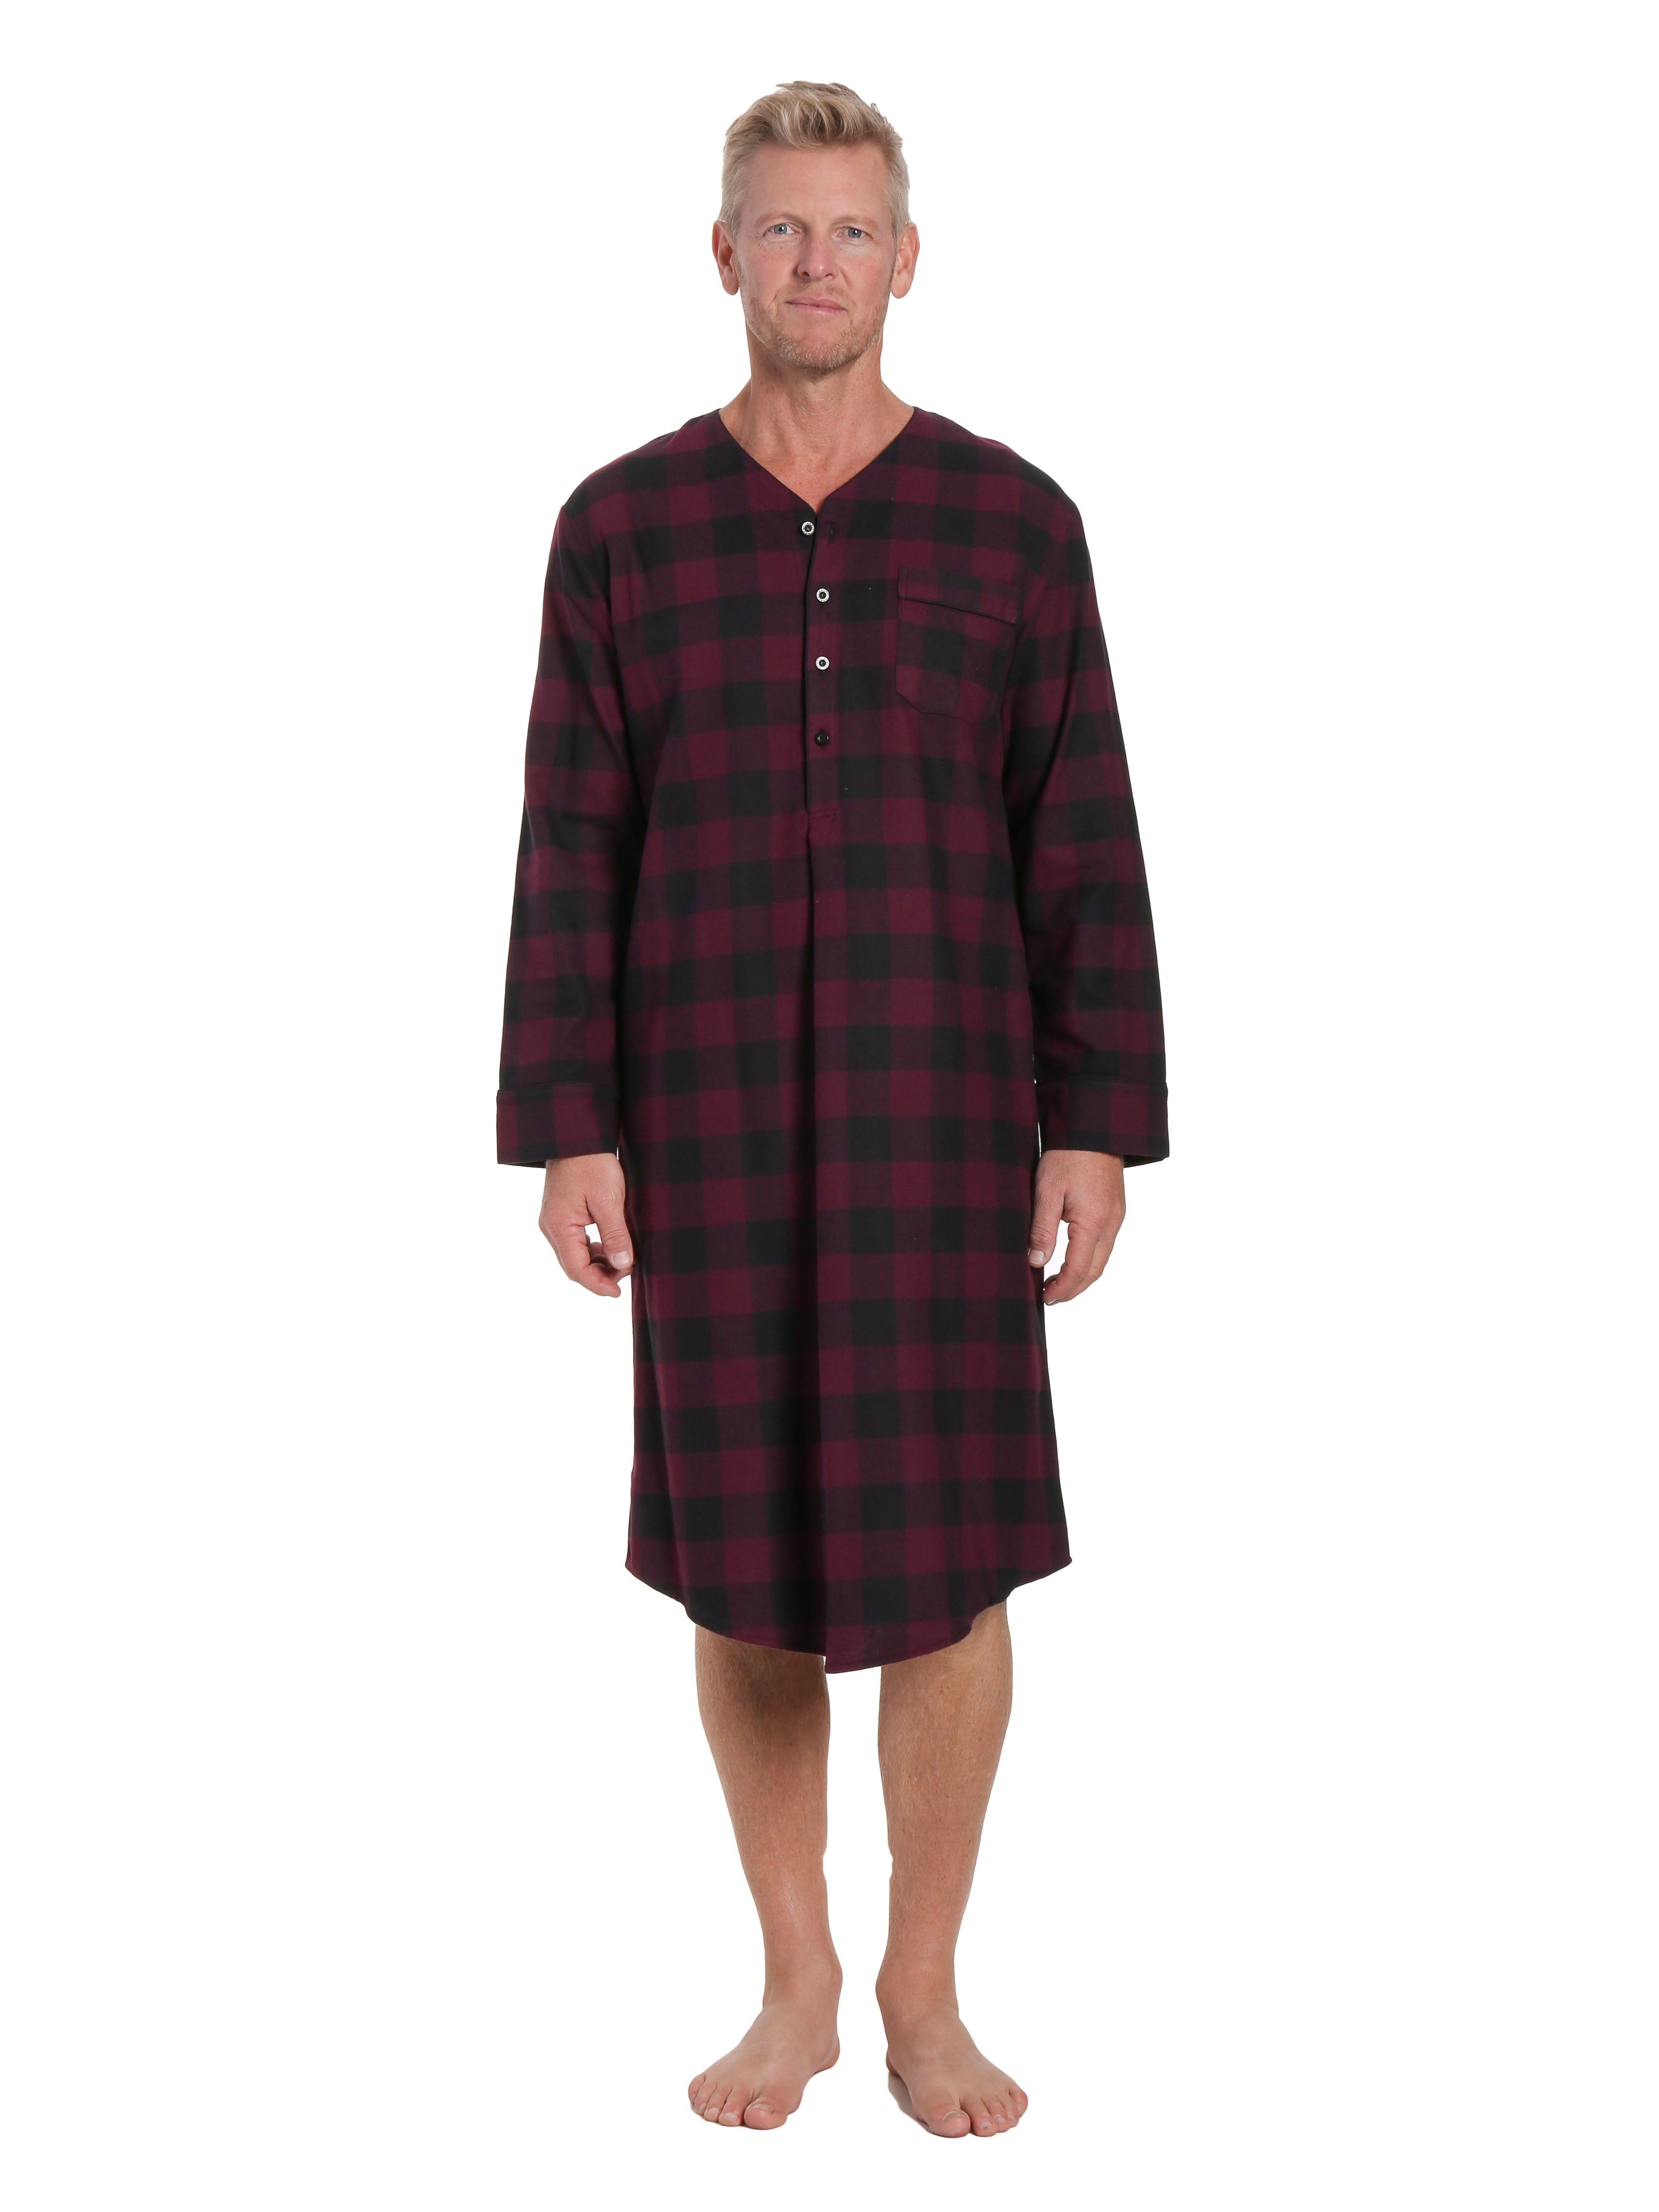 Mens 100% Cotton Flannel Nightshirt - Gingham Fig/Black